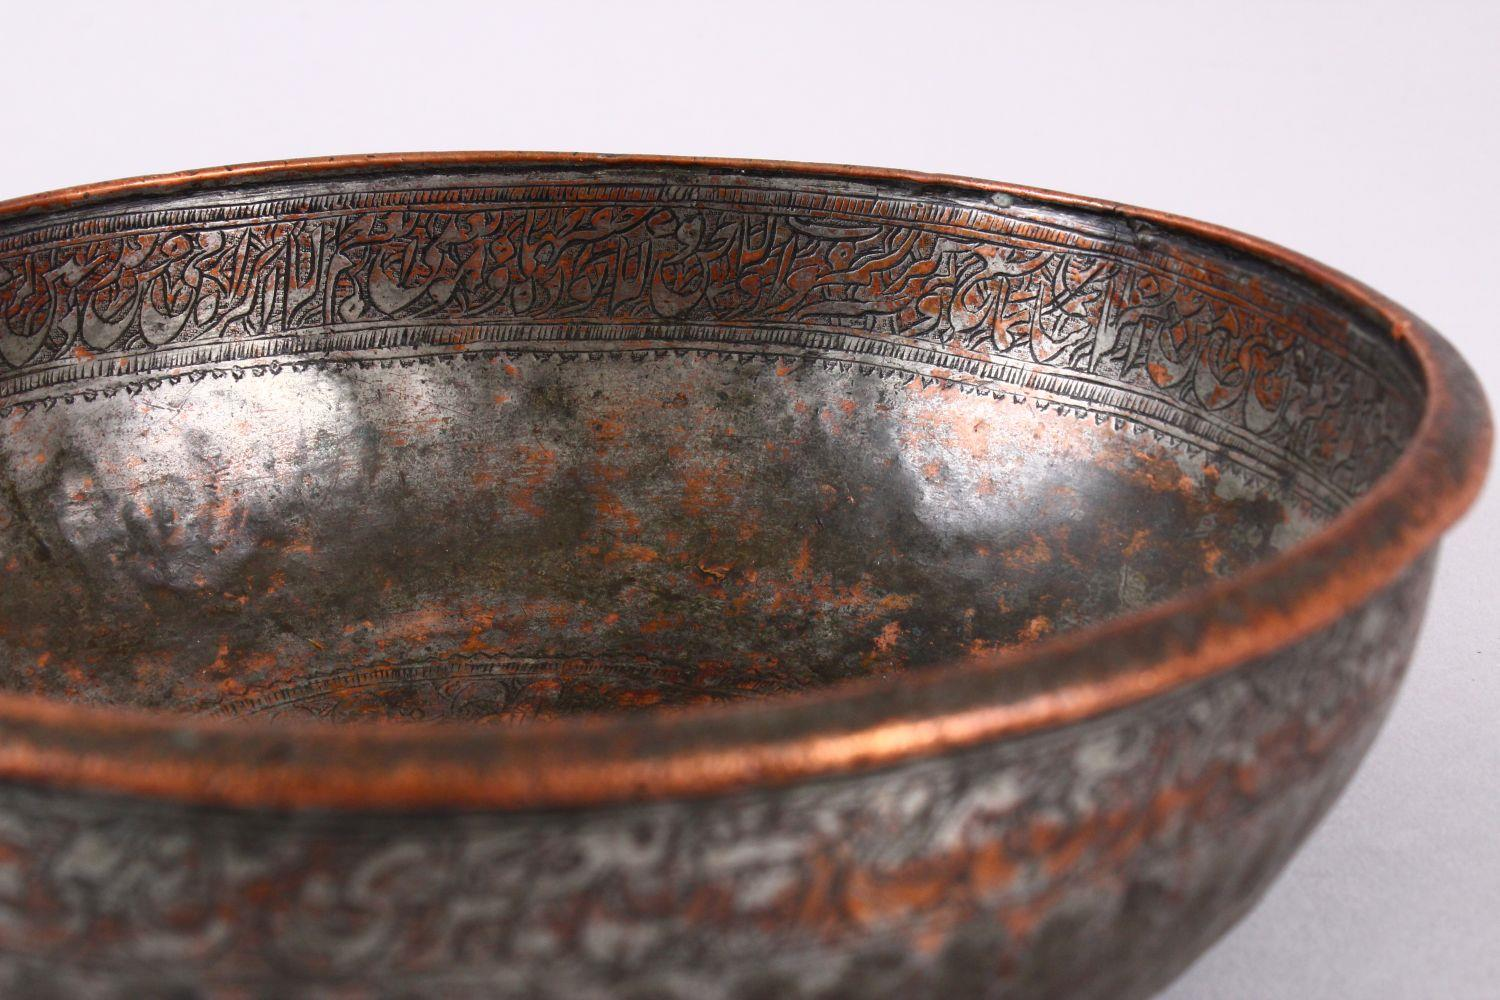 A UNUSUAL ISLAMIC TINNED HAMMERED COPPER CALLIGRAPHIC BOWL, decorated with interior & exterior bands - Image 5 of 8